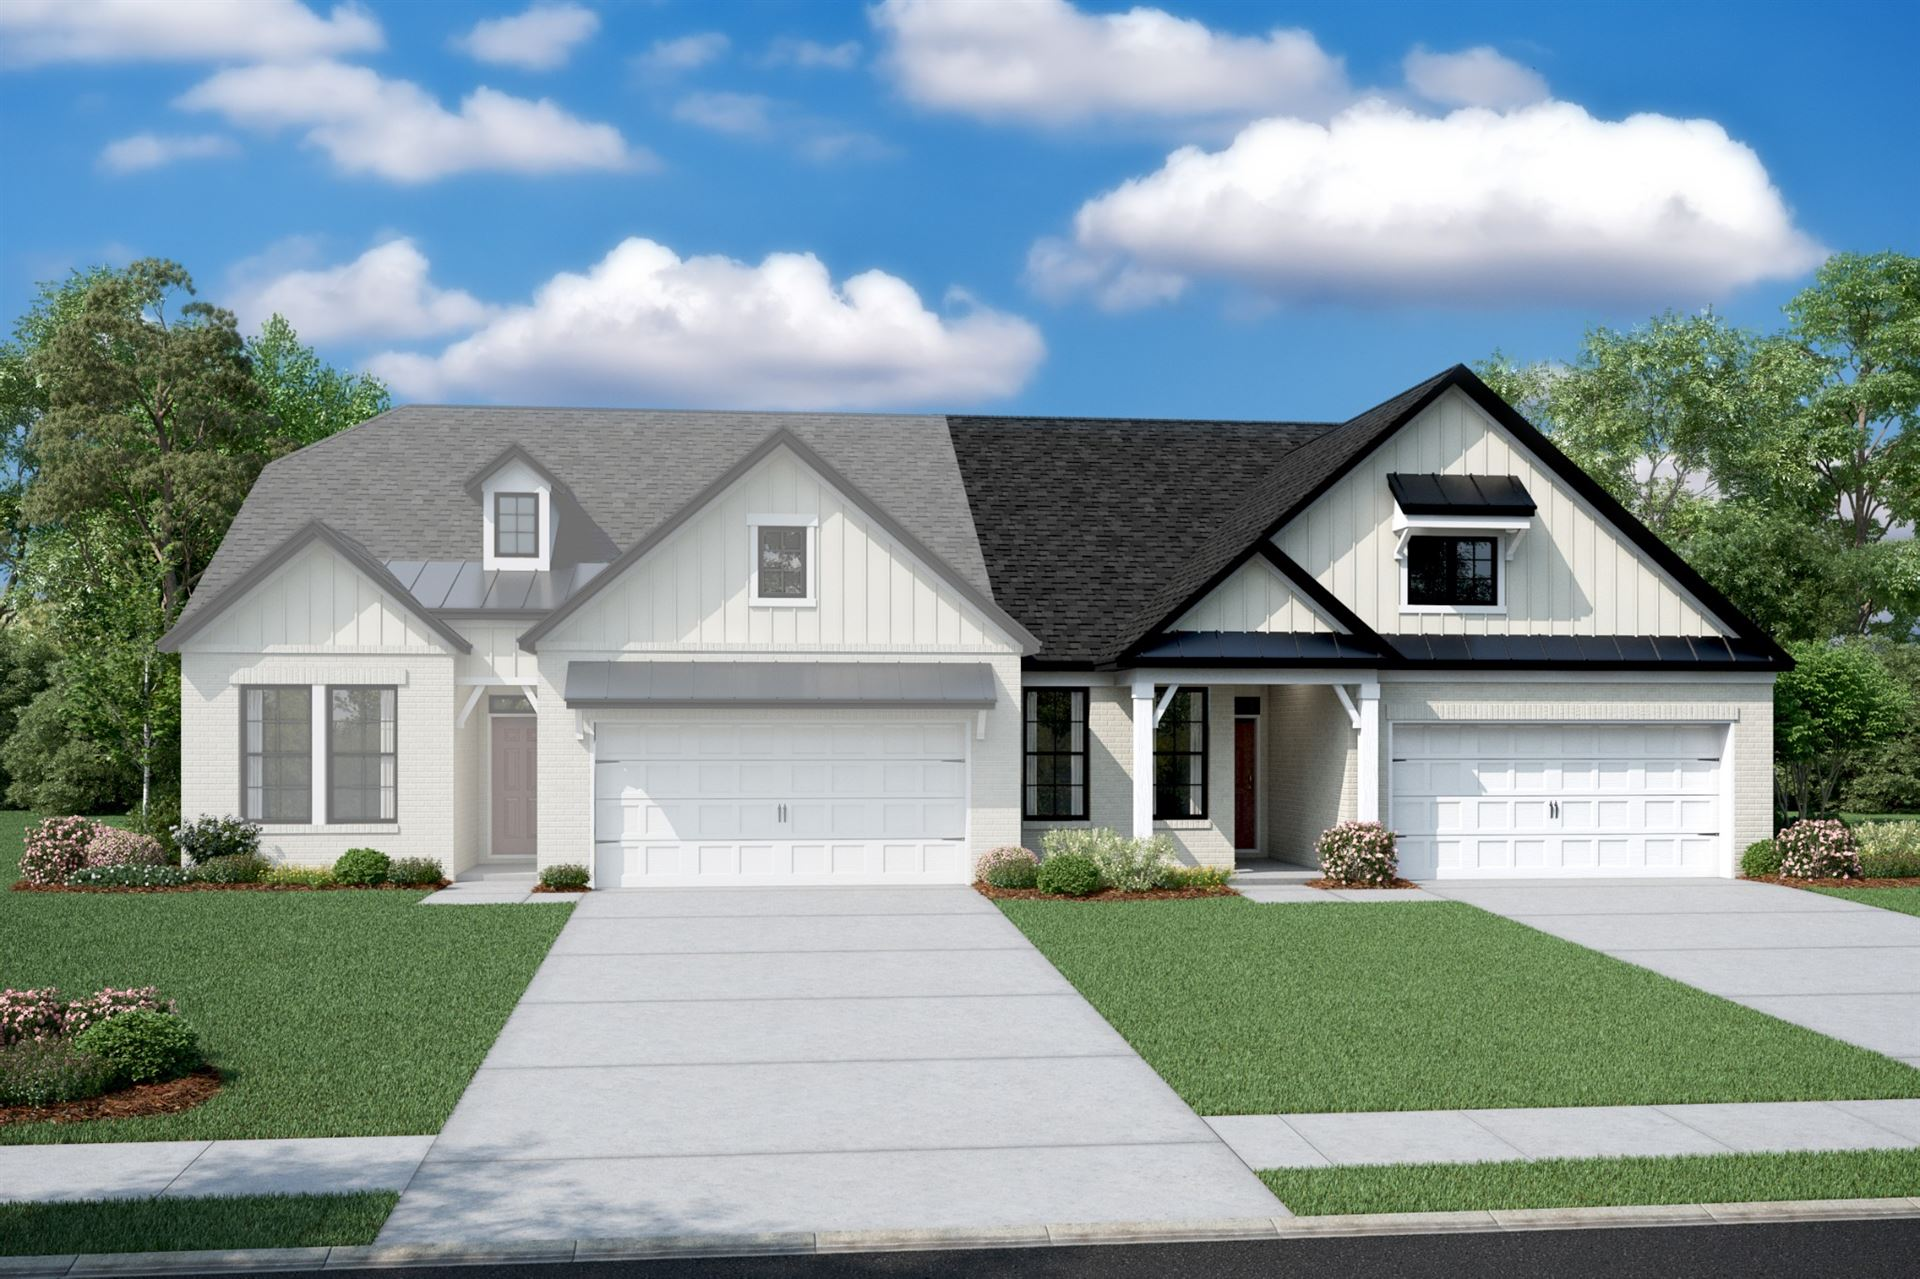 Photo of 821 Sunset View Drive, Hermitage, TN 37076 (MLS # 2219342)